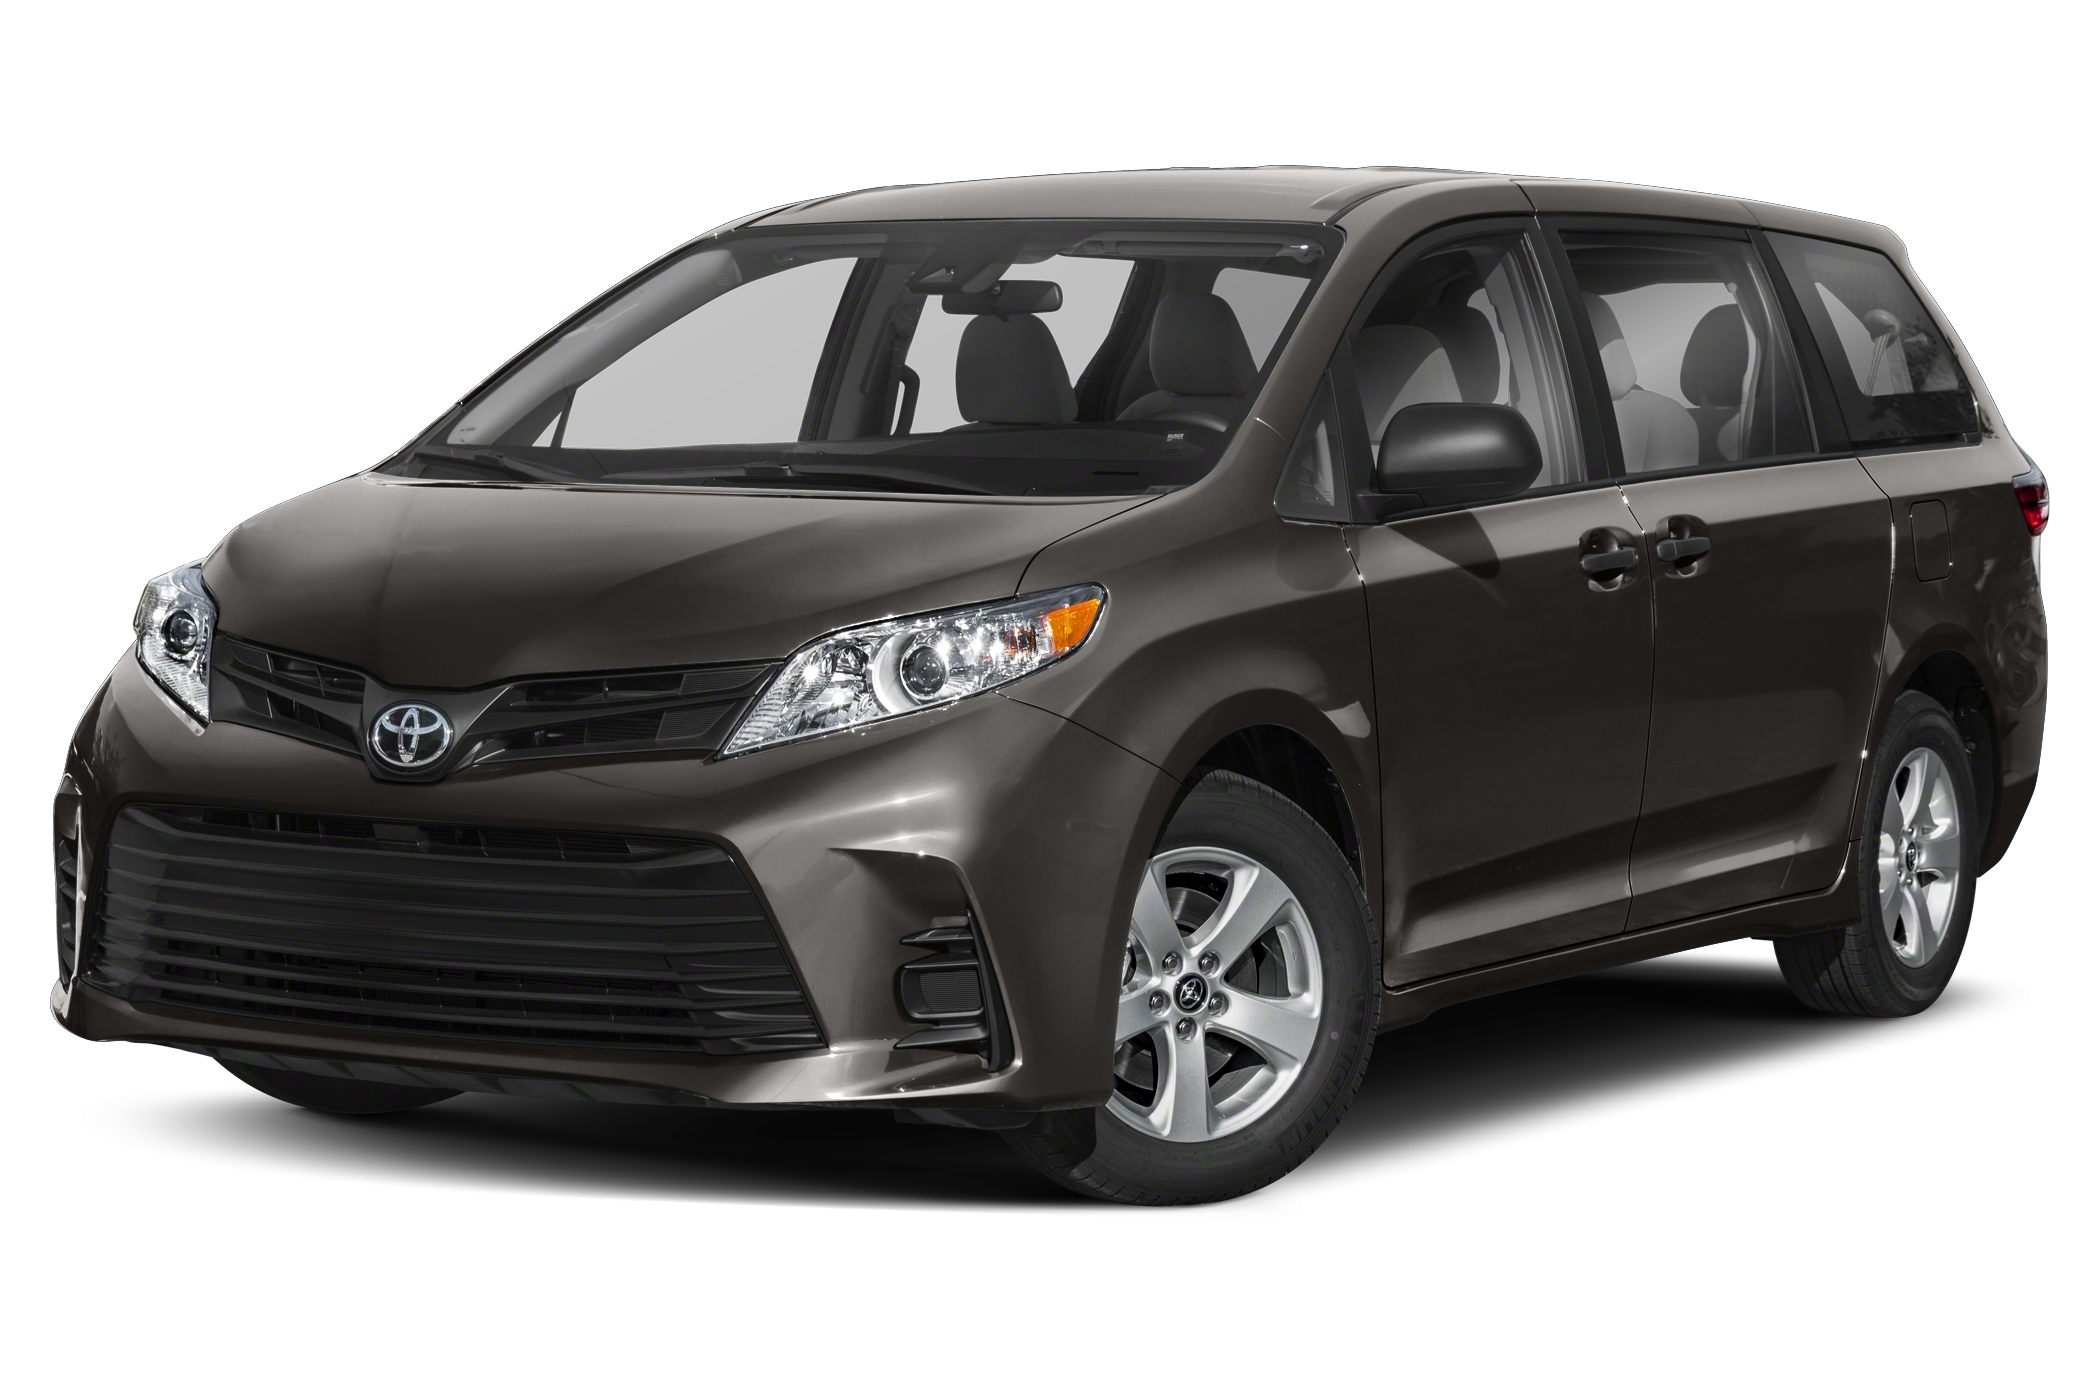 2019 Toyota Sienna Deals Prices Incentives Amp Leases Overview Carsdirect